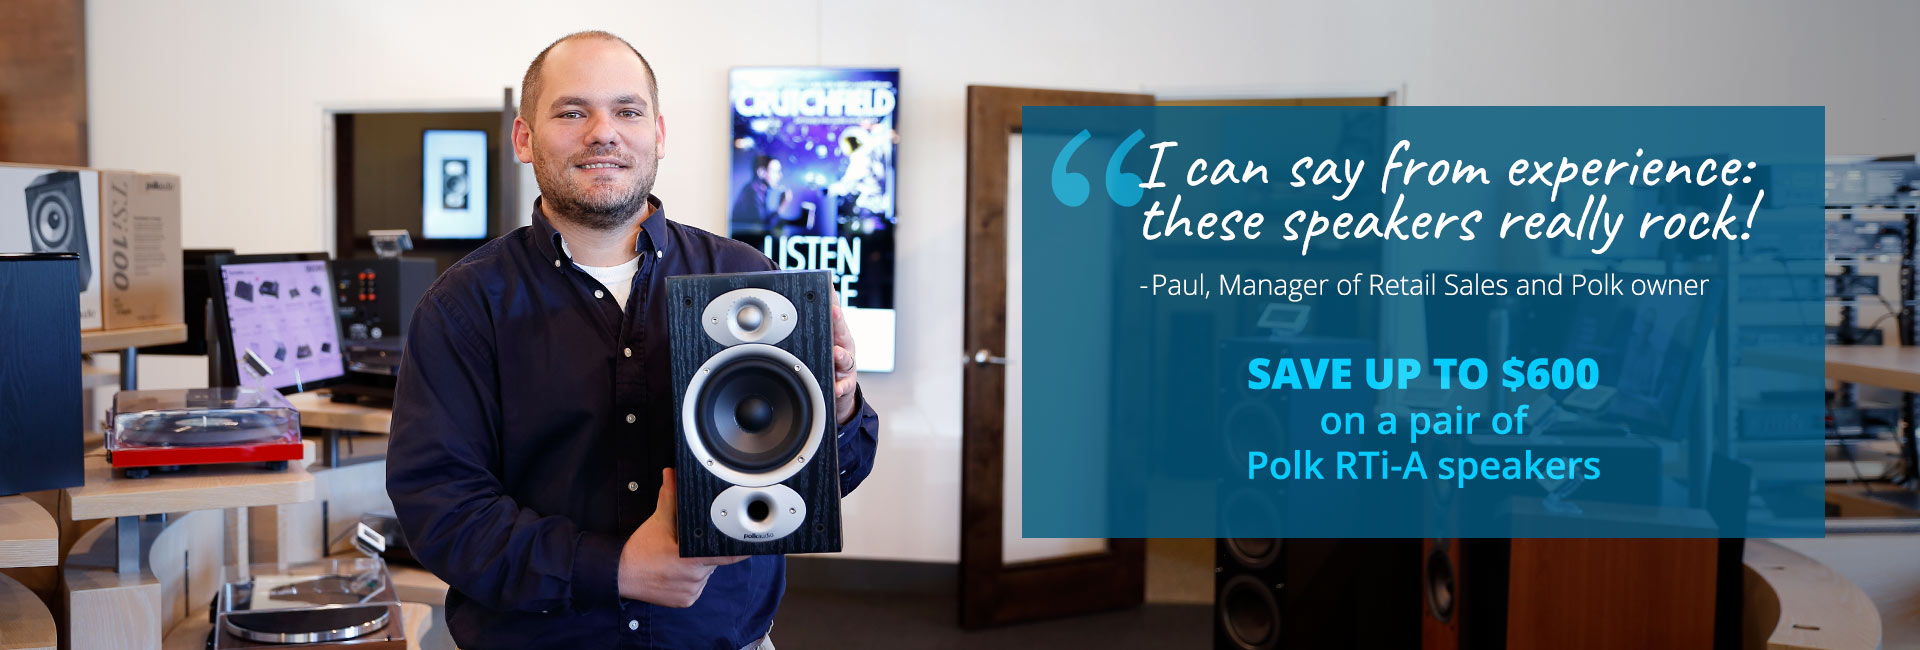 Save up to $600 on a pair of Polk RTi-A speakers